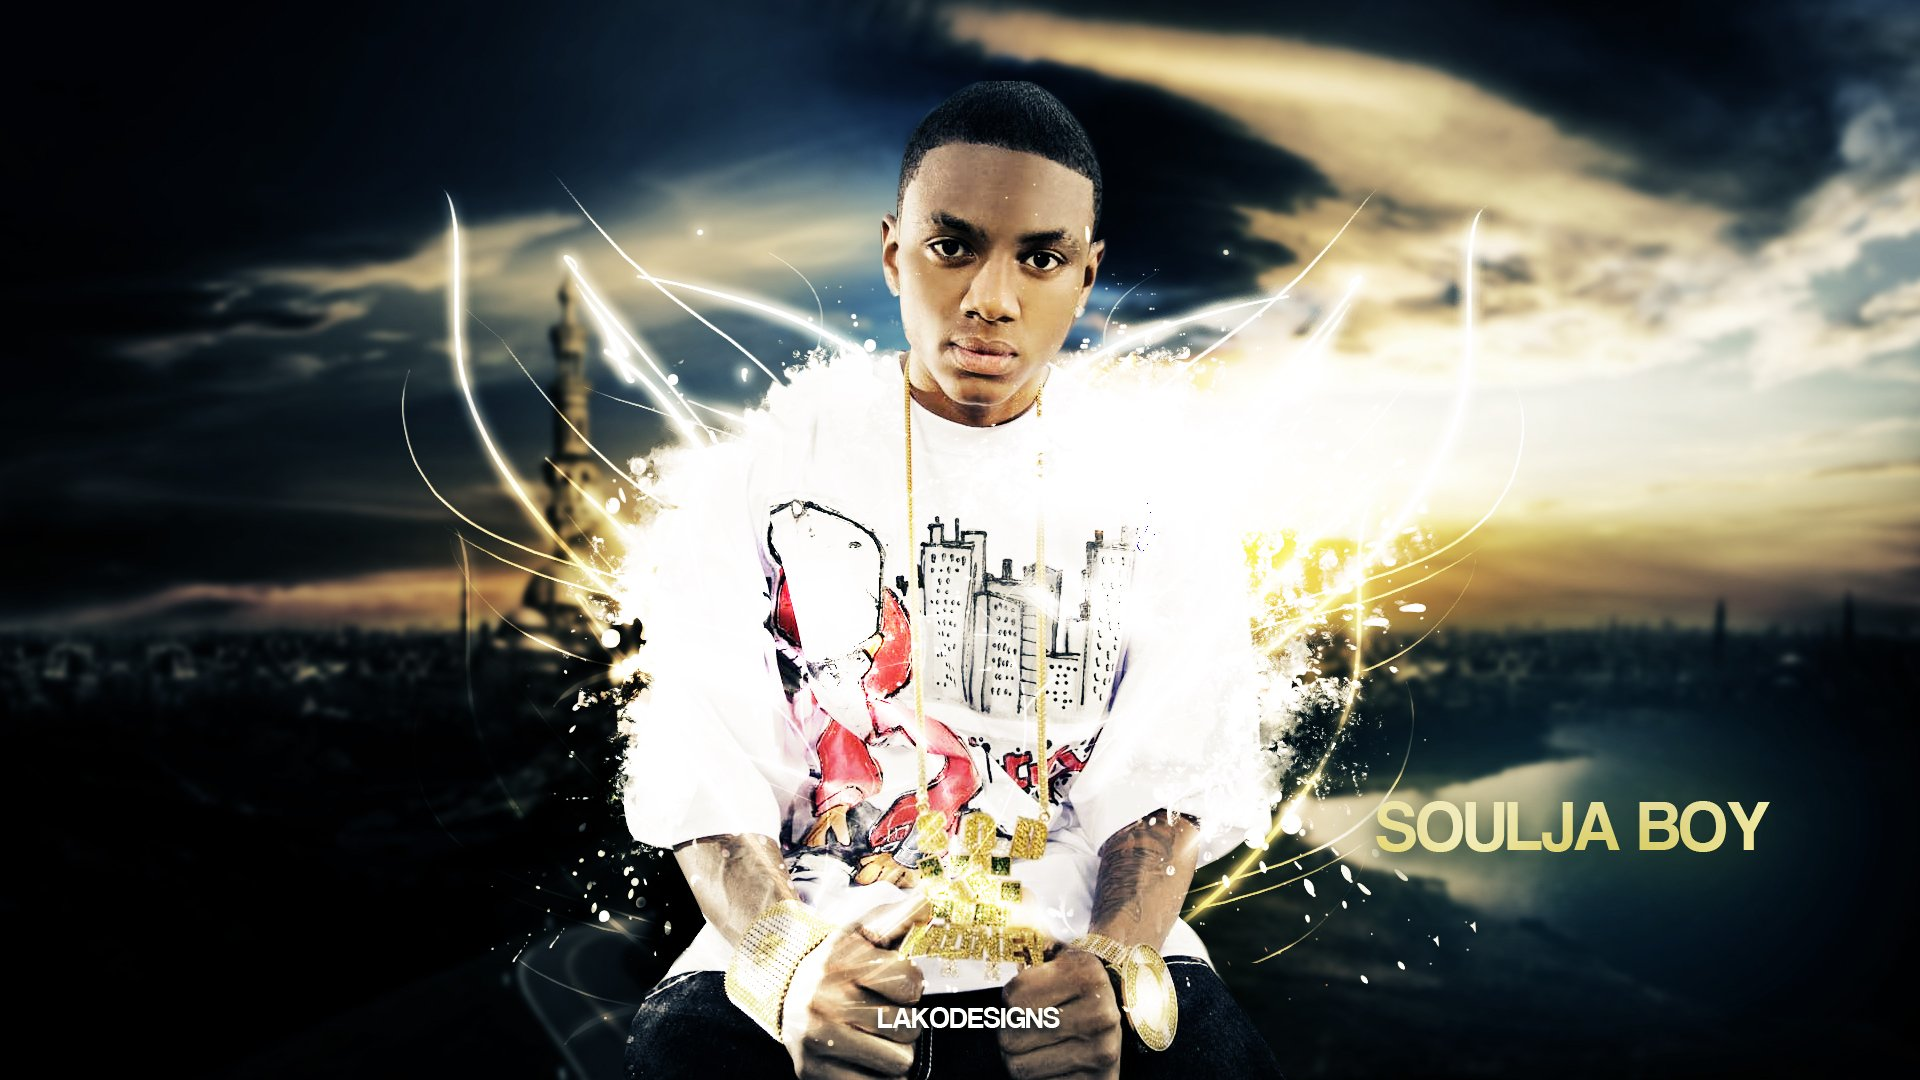 Download Soulja Boy Wallpaper Gallery